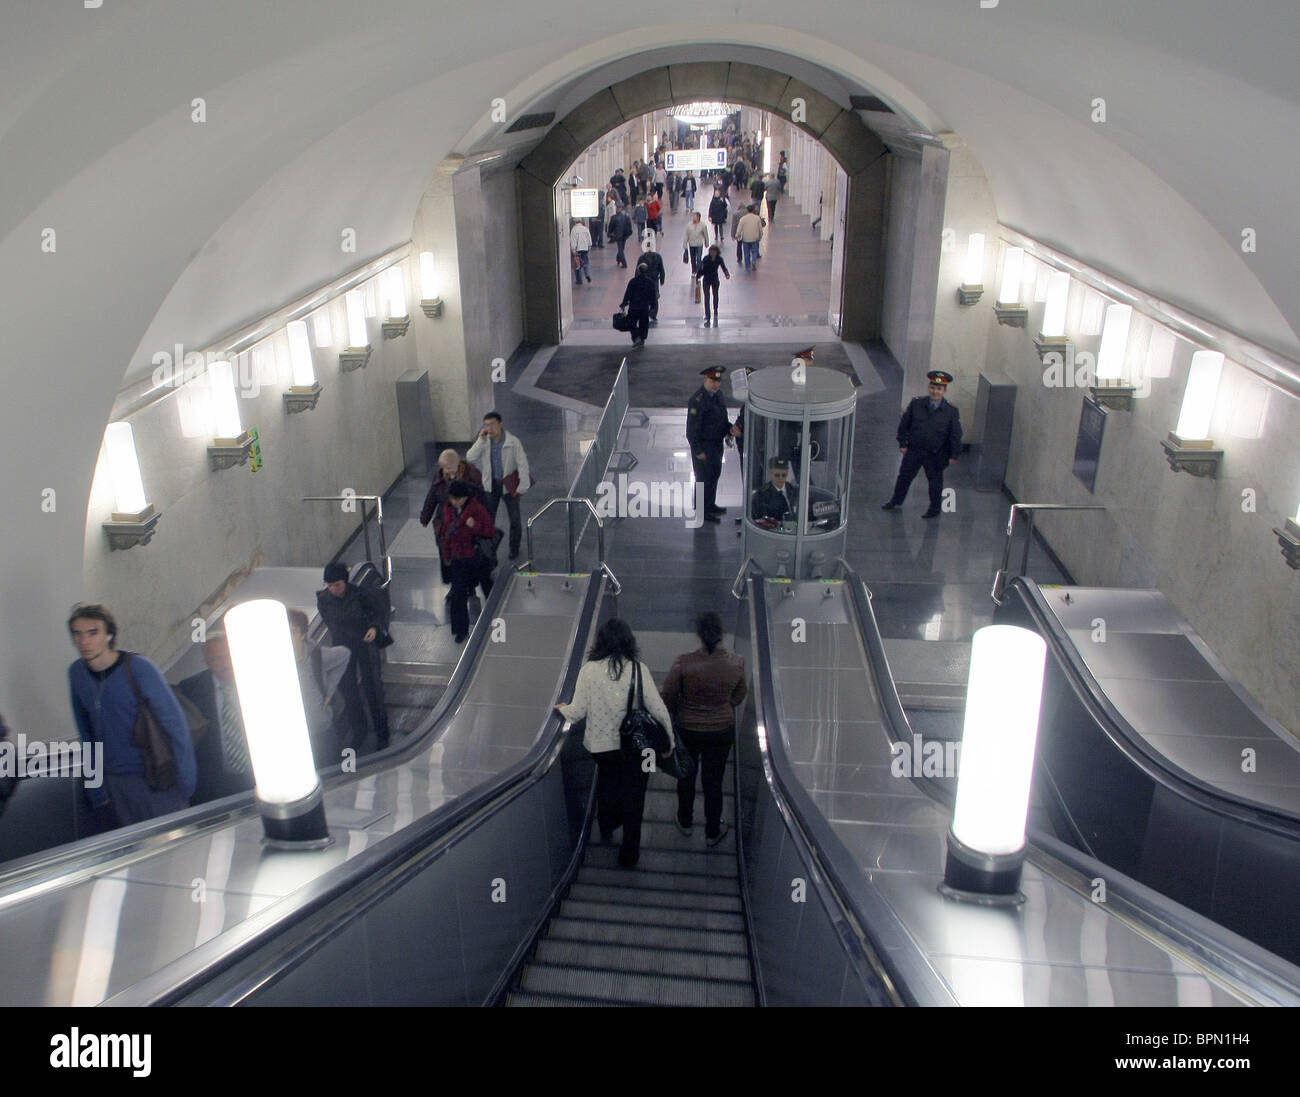 Moscow metro station renovated - Stock Image